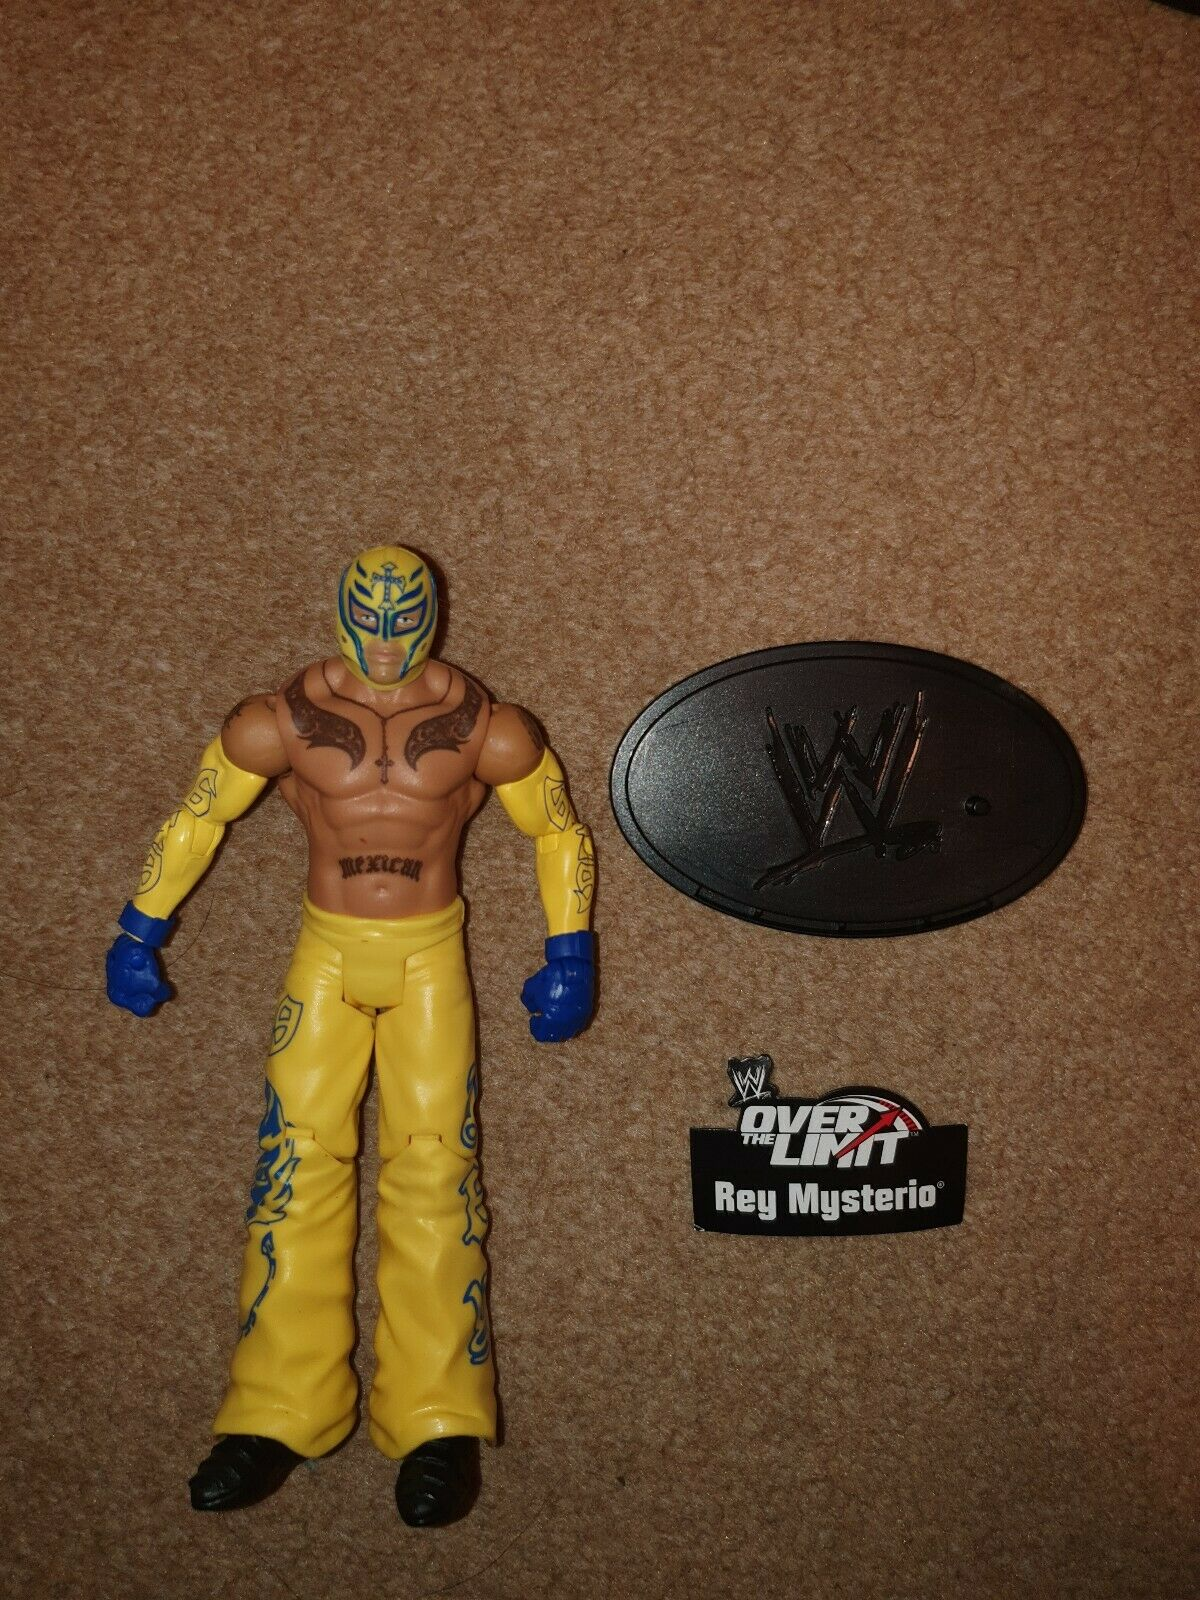 WWE Rey Mysterio Over the Limit With Stand Series 5 -Mattel Wrestling Figure